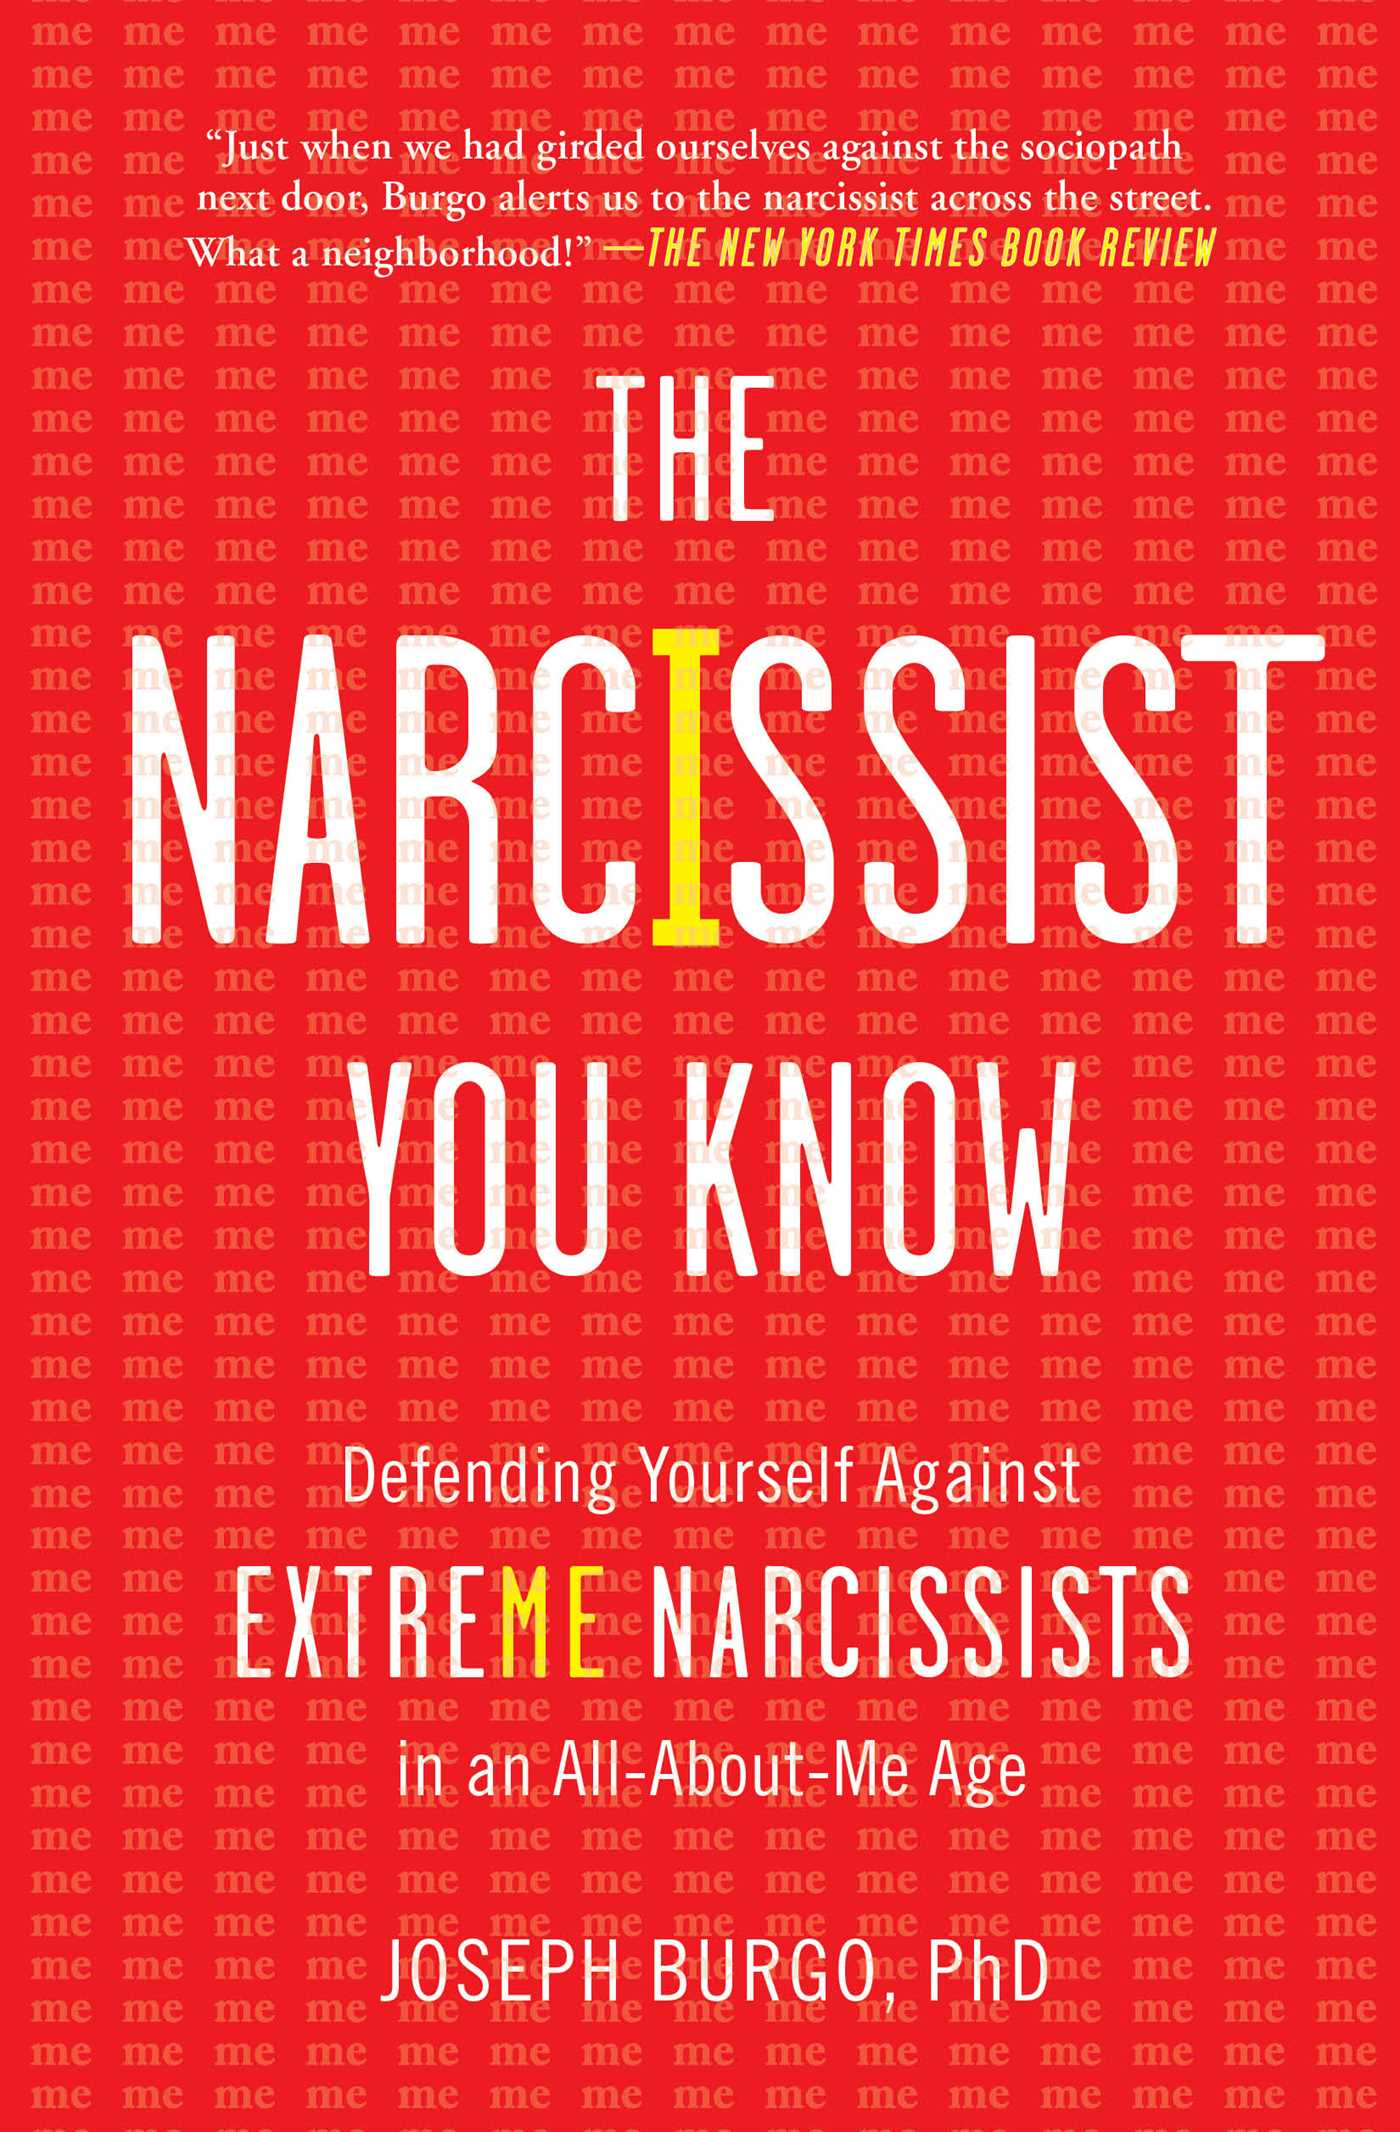 The narcissist you know 9781476785691 hr